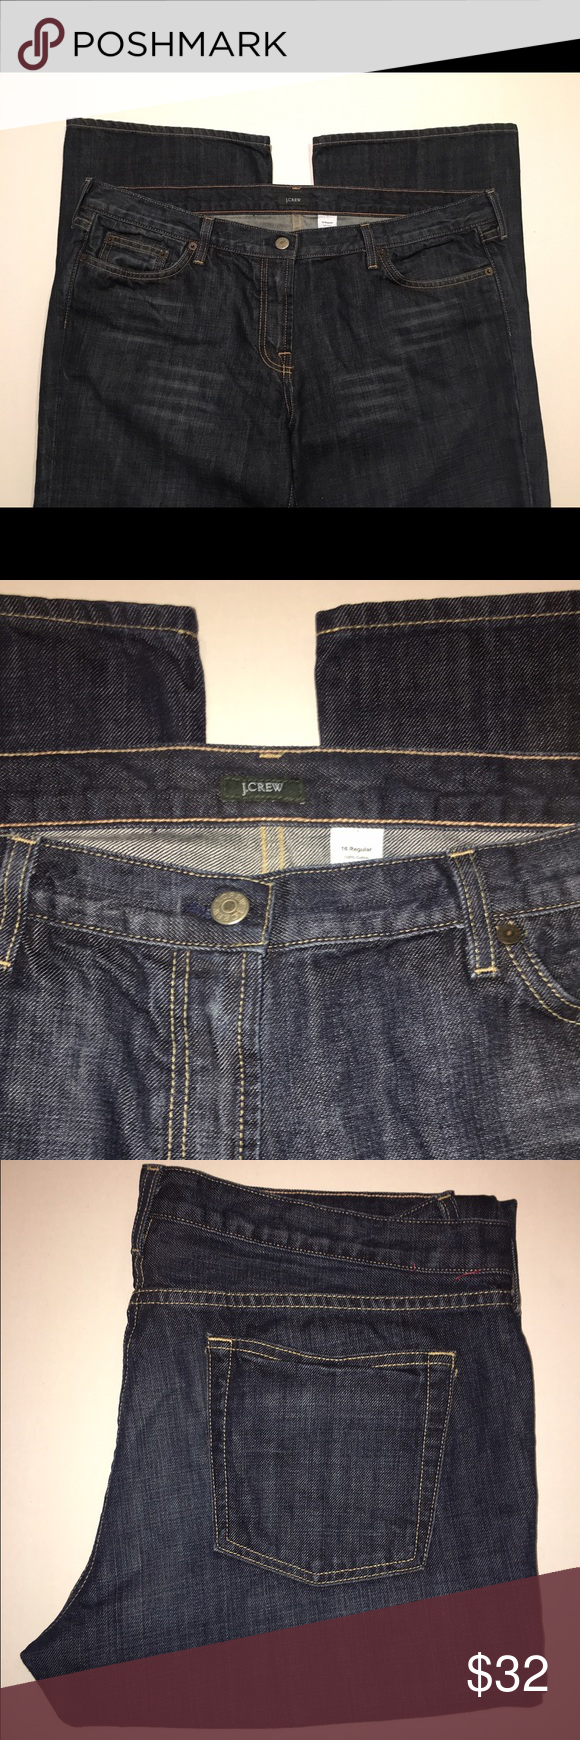 J. Crew Dark wash Bootcut Jeans size 16 regular Cotton. Bootcut fit. Sits below waist, straight through hip and thigh, with a bootcut leg. Zip fly. Traditional 5-pocket styling. J. Crew Jeans Boot Cut